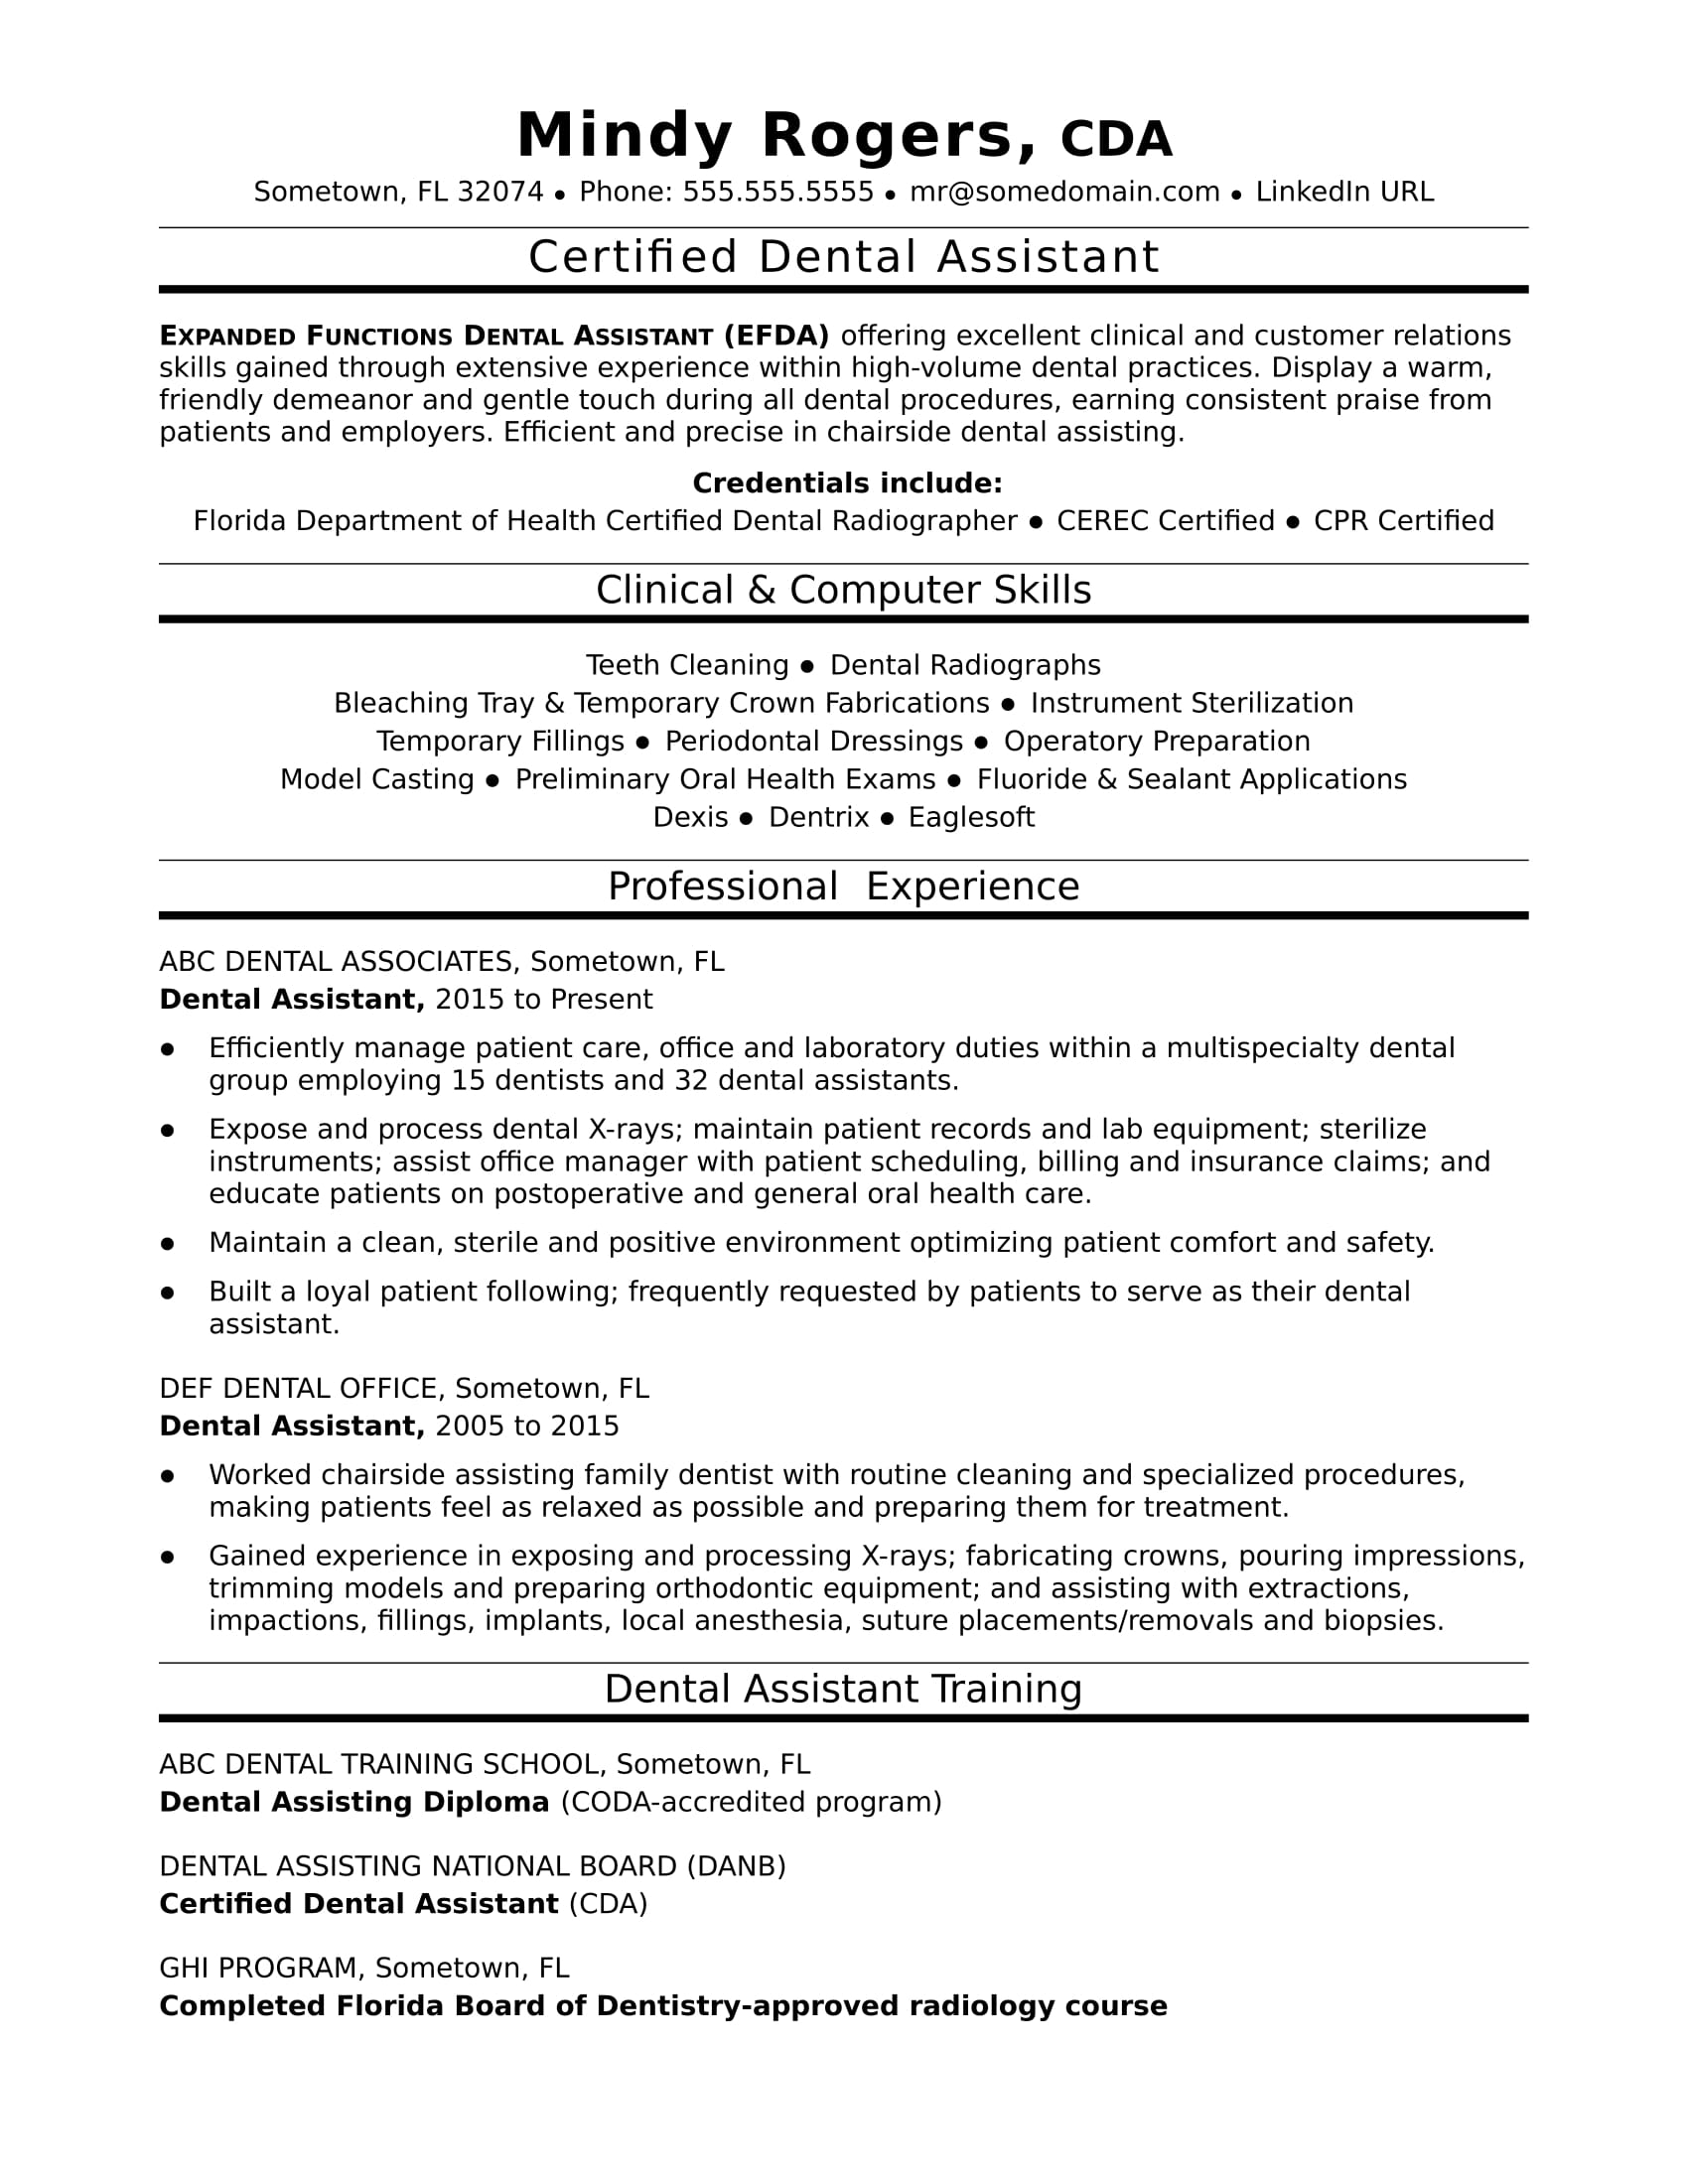 Superior Dental Assistant Resume Sample For Dental Assistant Duties For Resume